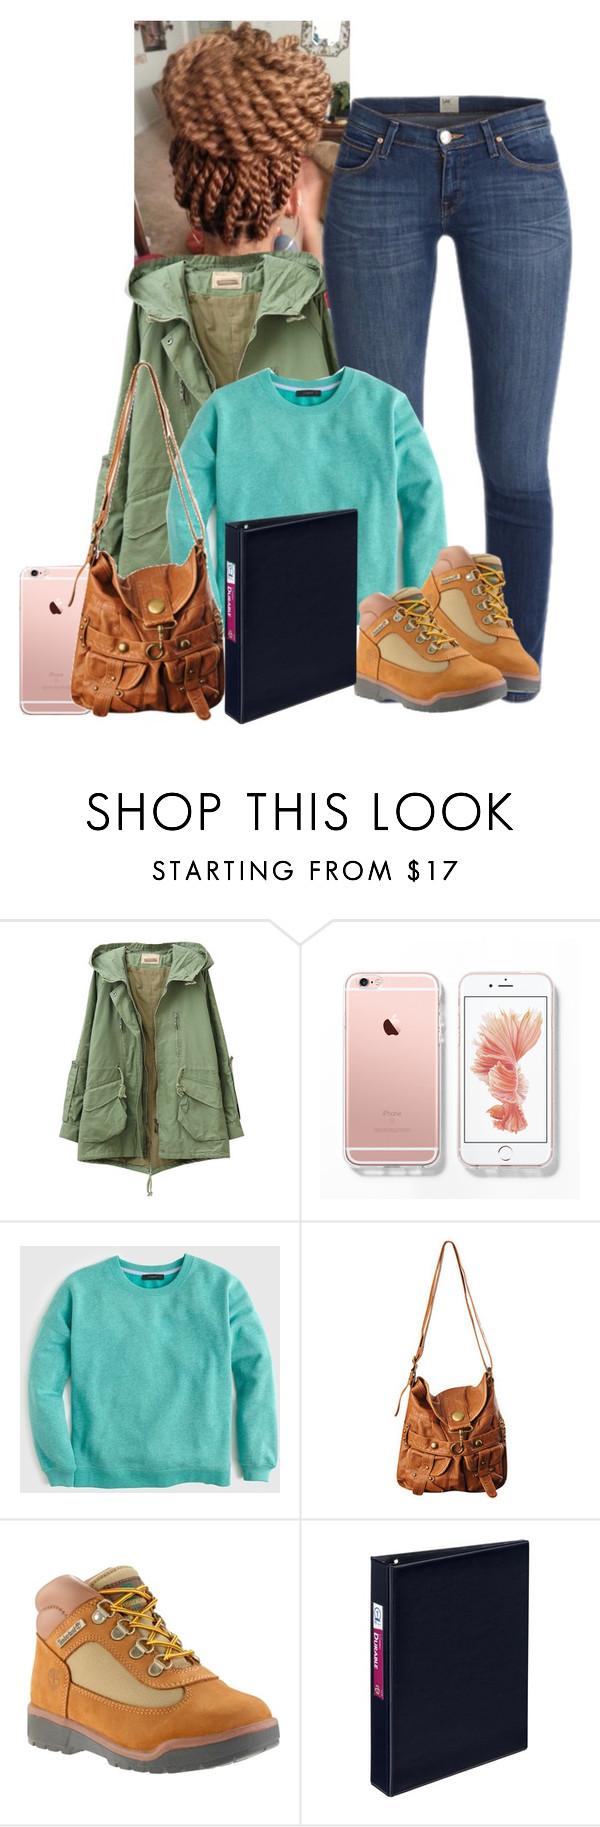 """Ootd✨"" by je-mimi ❤ liked on Polyvore featuring J.Crew, Forever 21 and Avery"